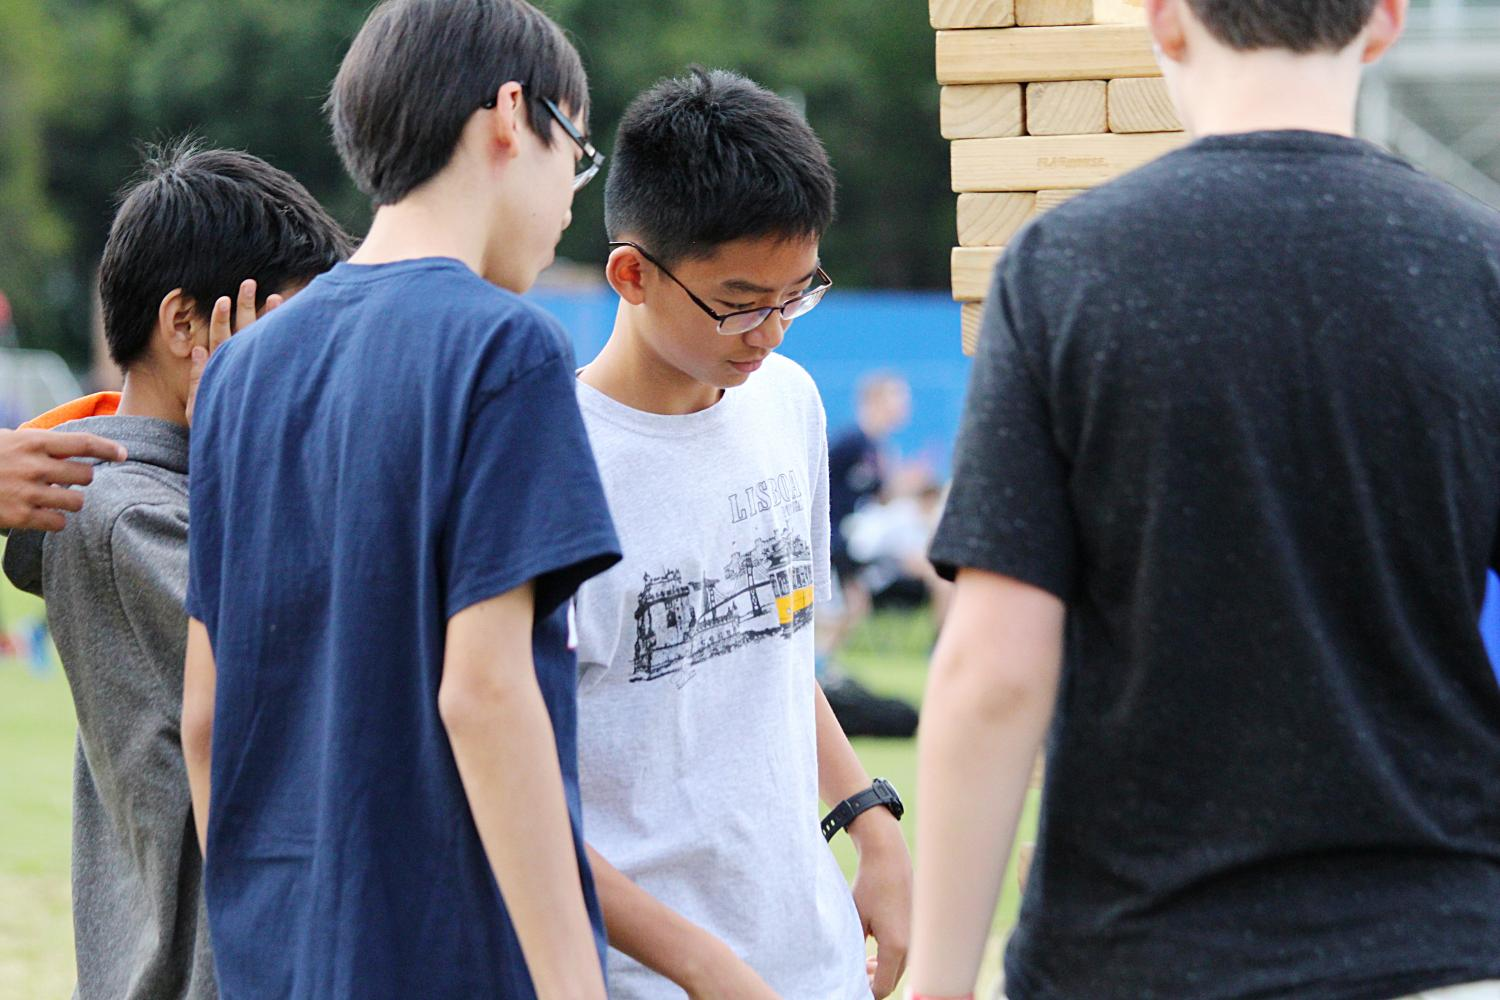 Sophomore Joshua Gong carefully eyes the Jenga structure before his next move.